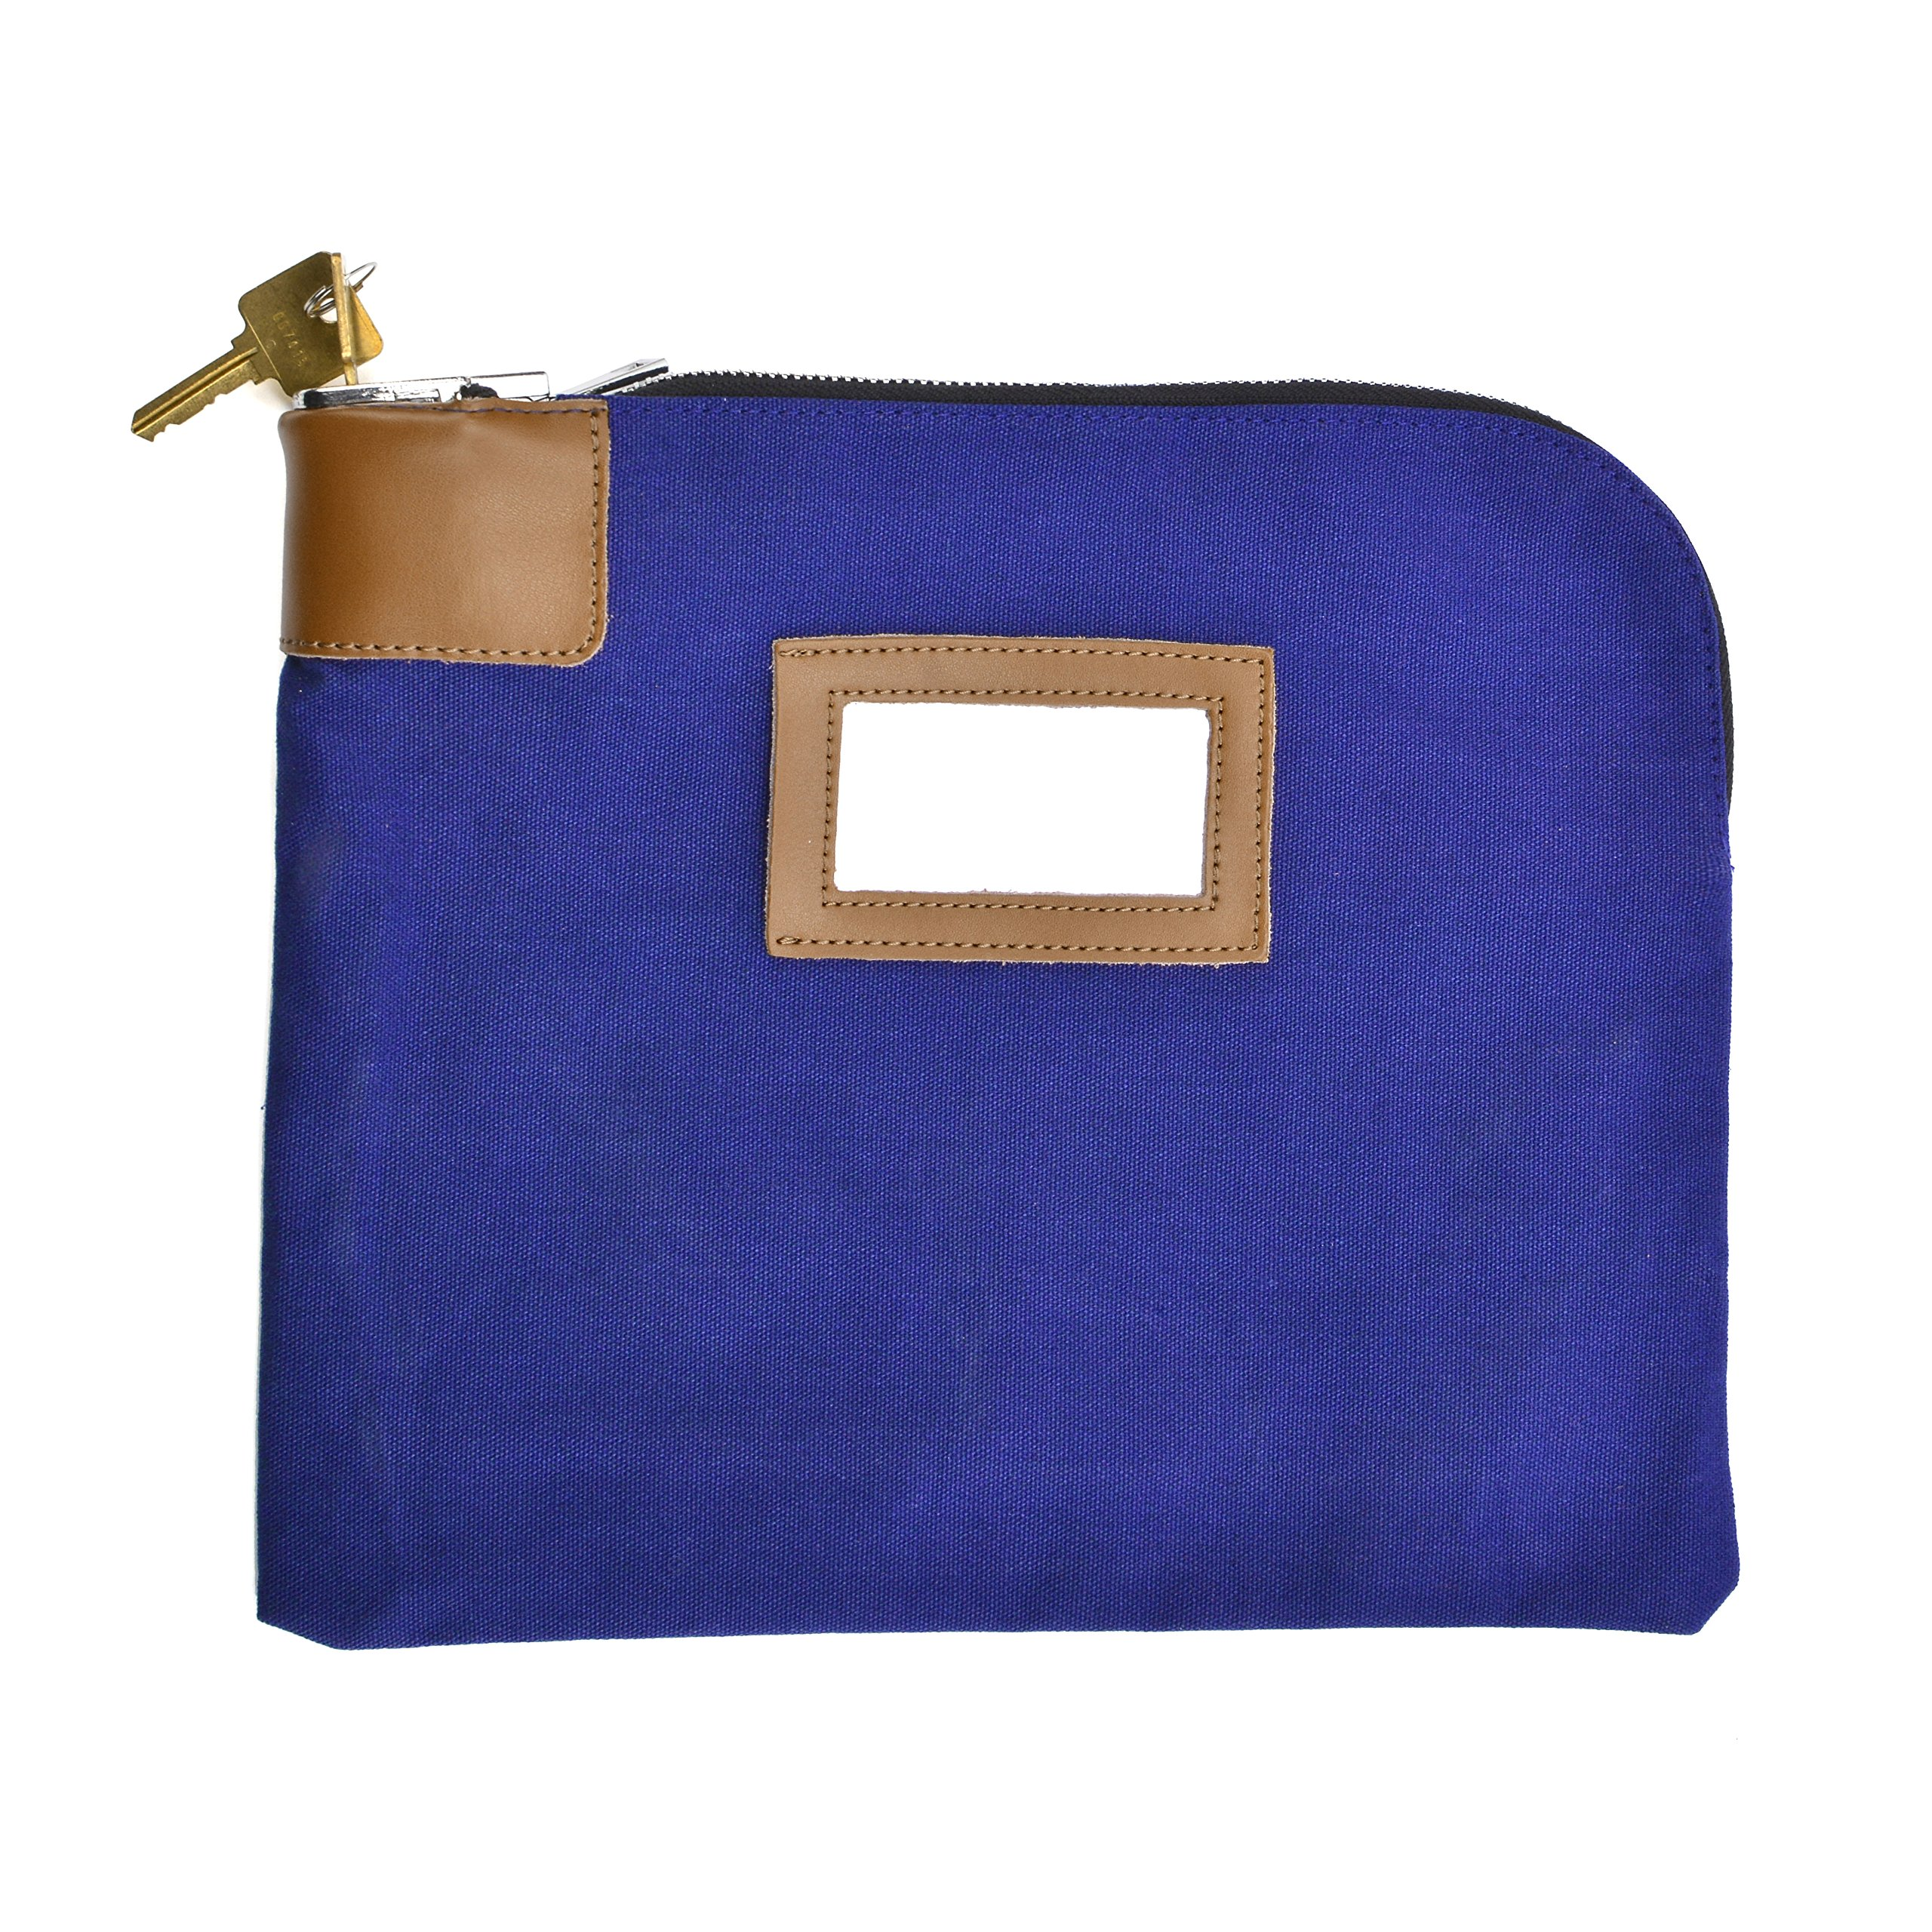 Security/Night Deposit Bag with 2 Keys, Locking Bank Bag Canvas 11 x 8-1/2 inches, Blue